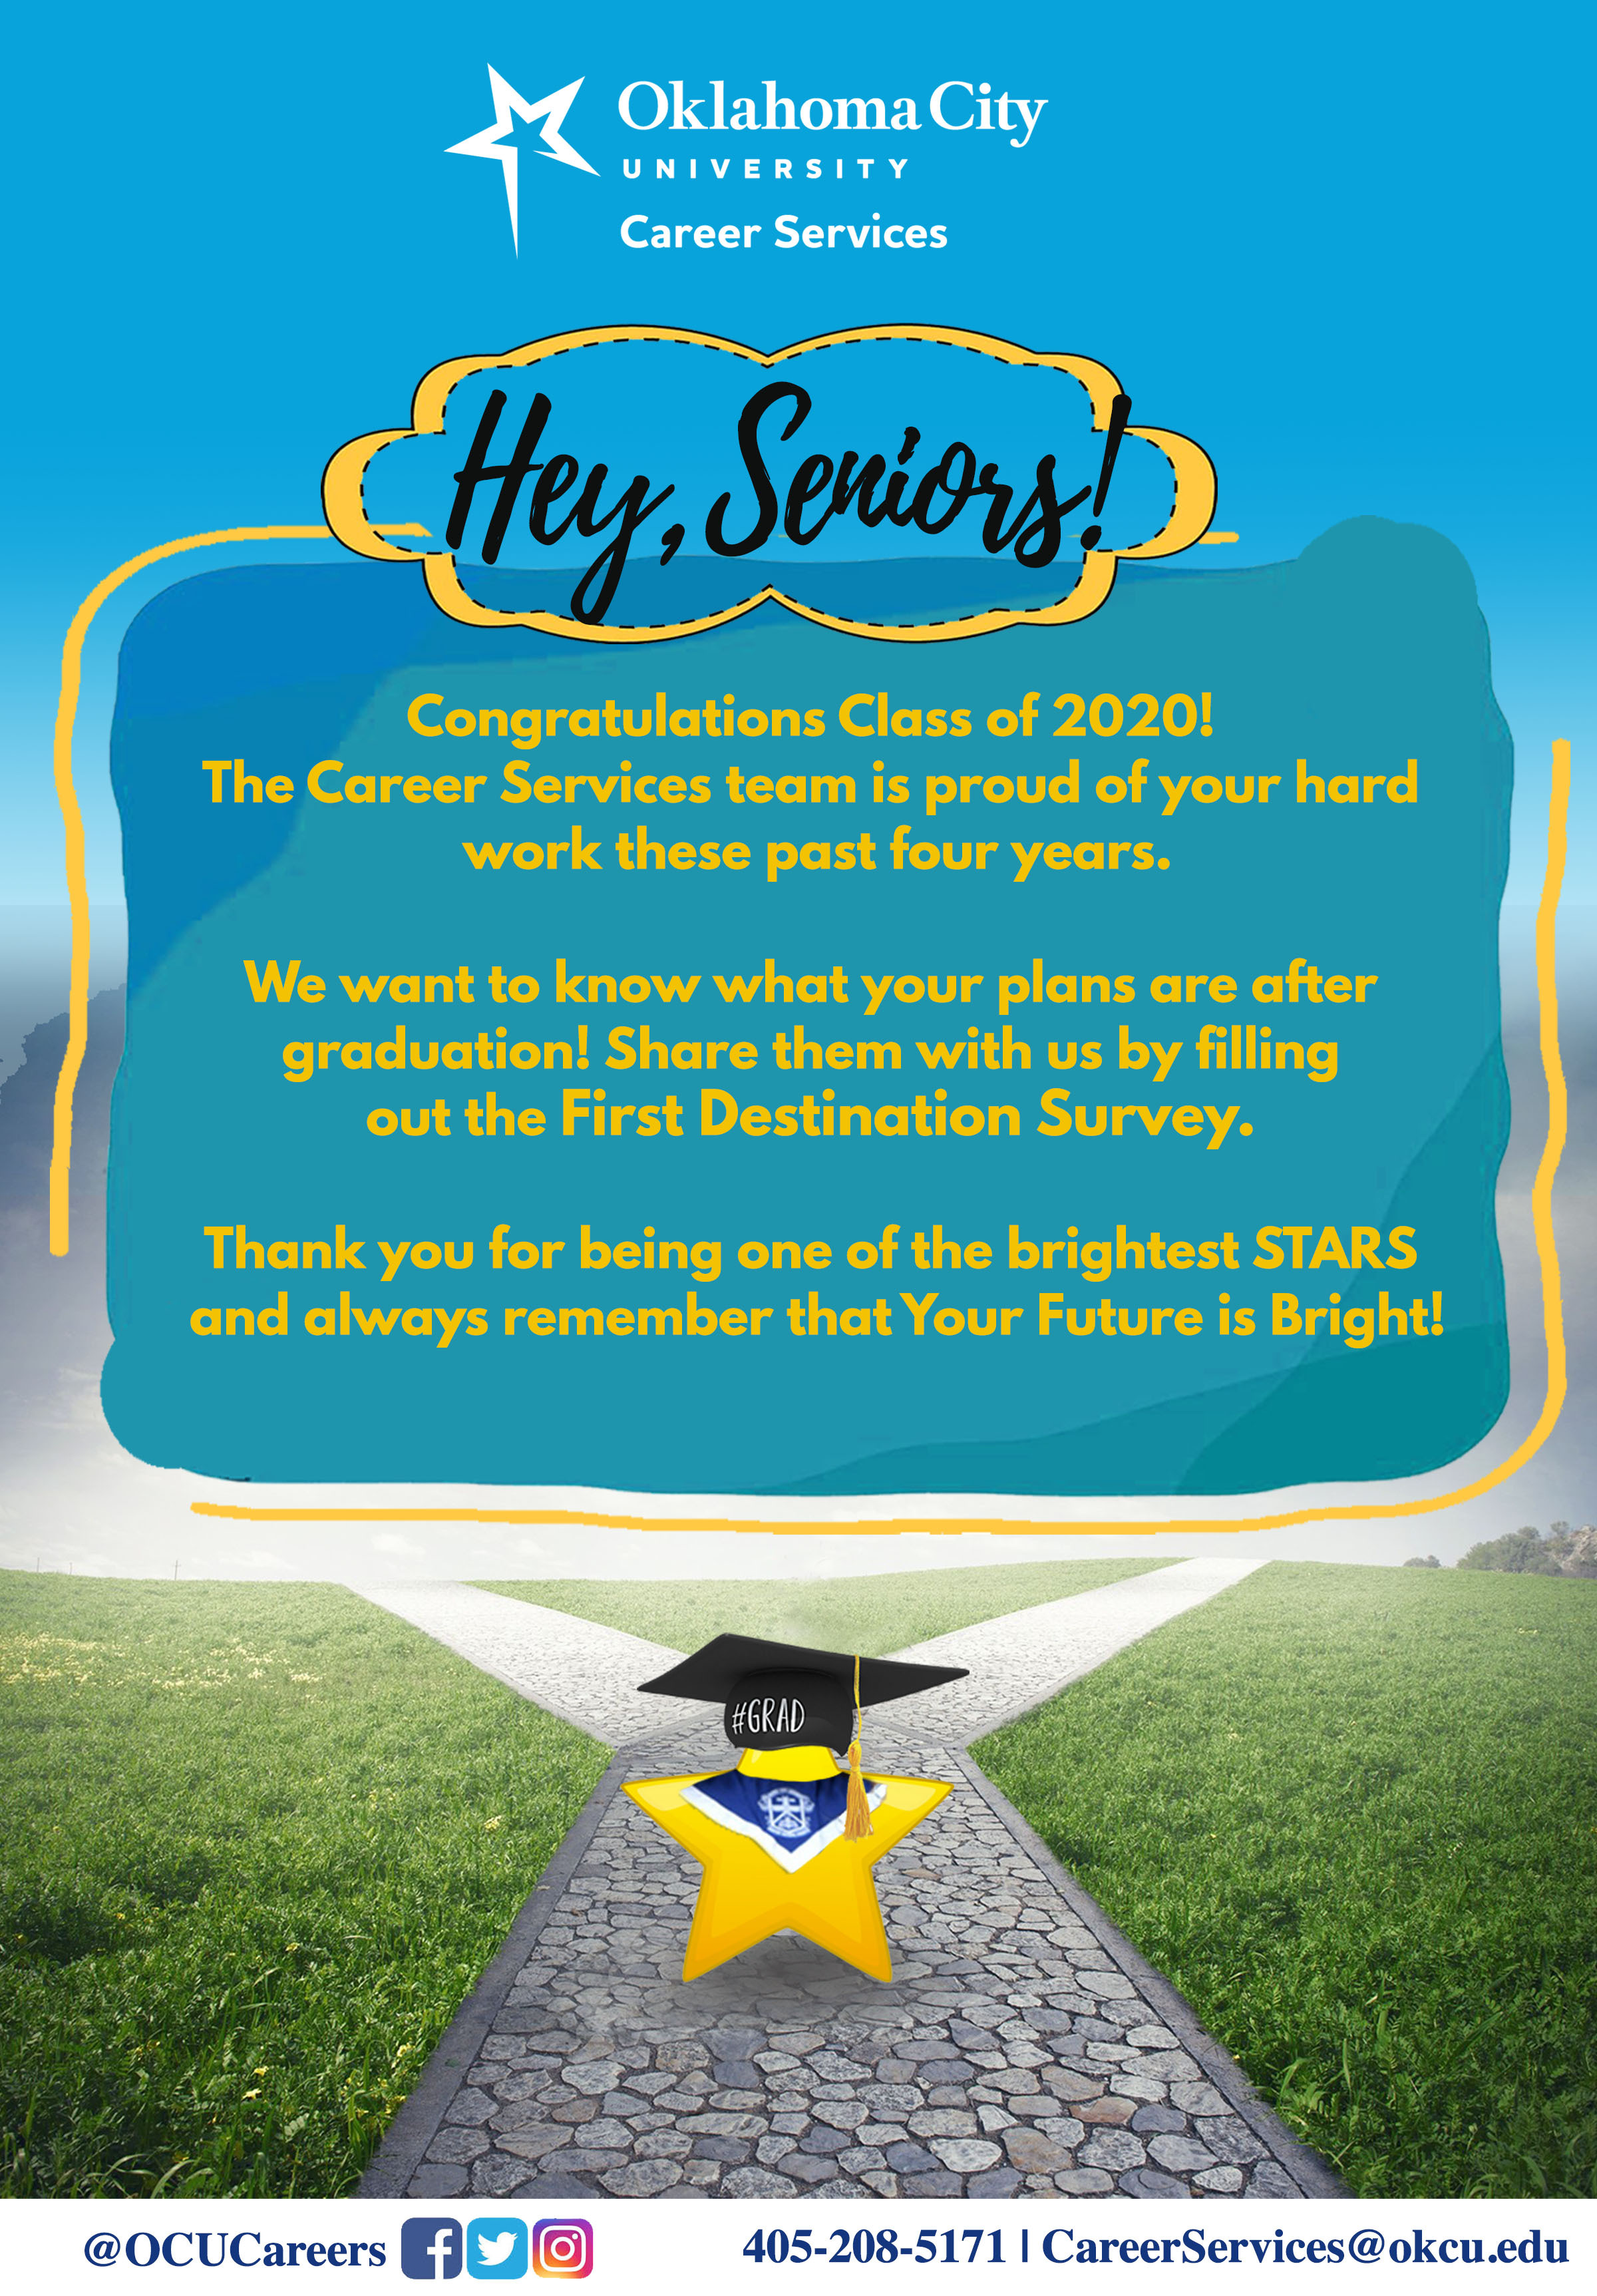 Congratulations Class of 2020! The Career Services team is proud of your hard wok thise past four years. We want to know what your plans are after graduation! Share them with us by filling out the First Destination Survey. Thank you for being one of the brightest STARS and always rememeber that Your Future is BRIGHT!